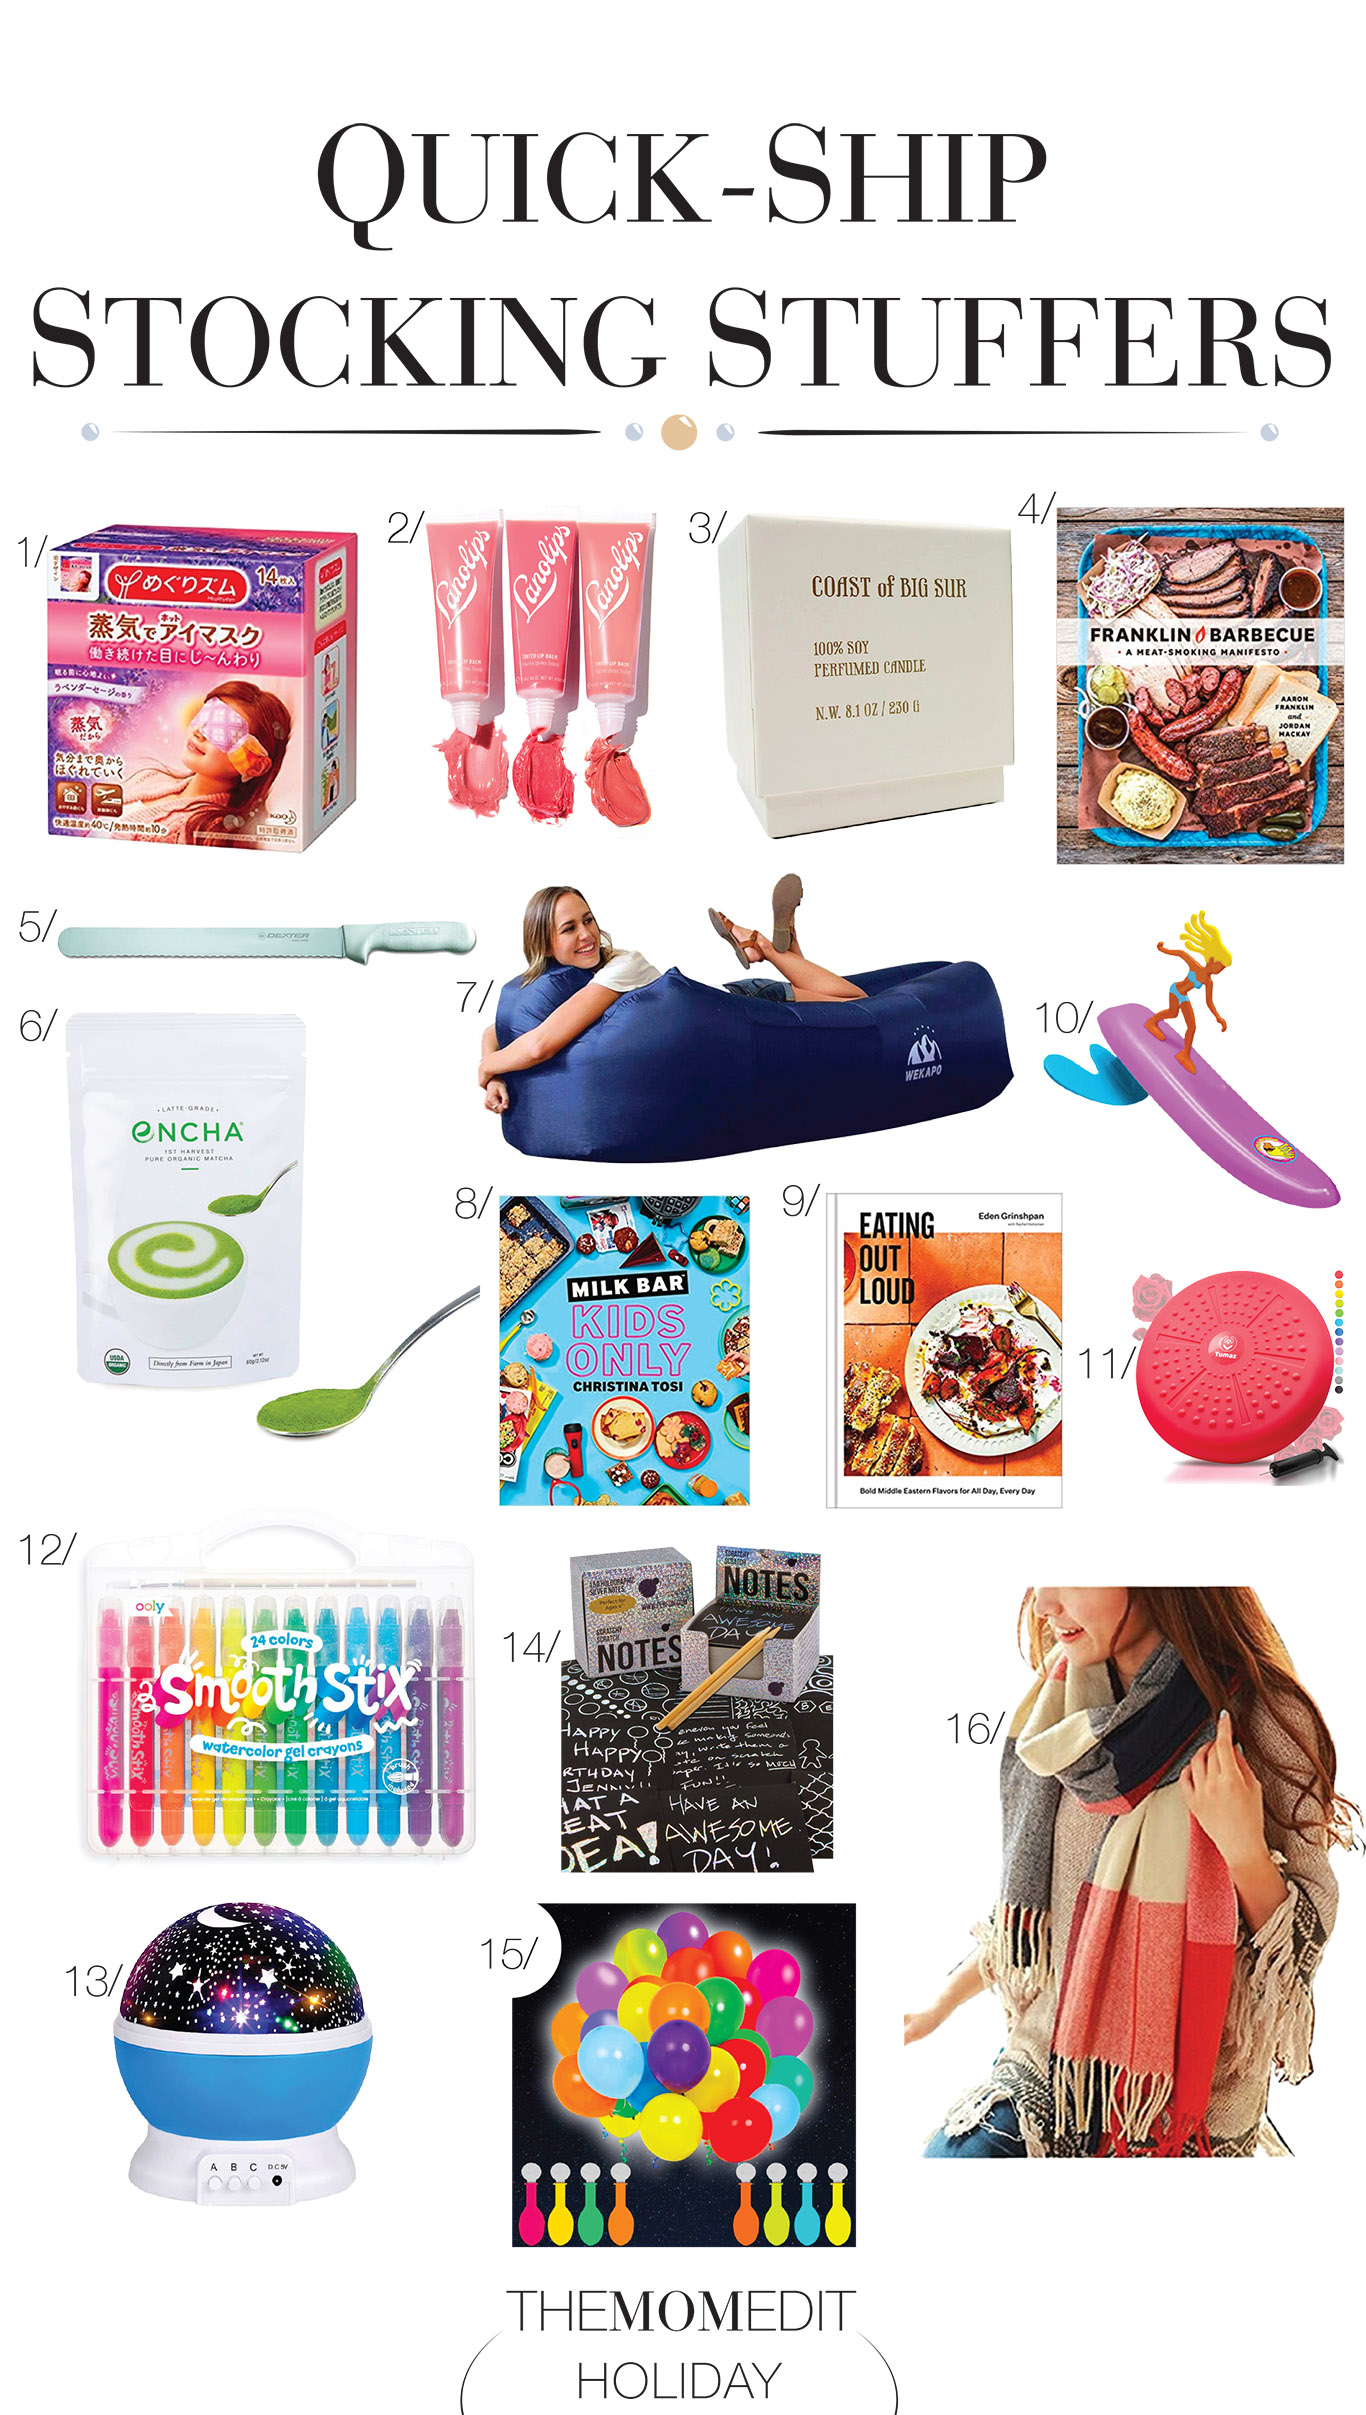 Don't walk, run! We've got 16 tried-&-true stocking stuffer ideas we personally vouch for + a few smaller gifts for him, her or them. And it all ships in time for Christmas.